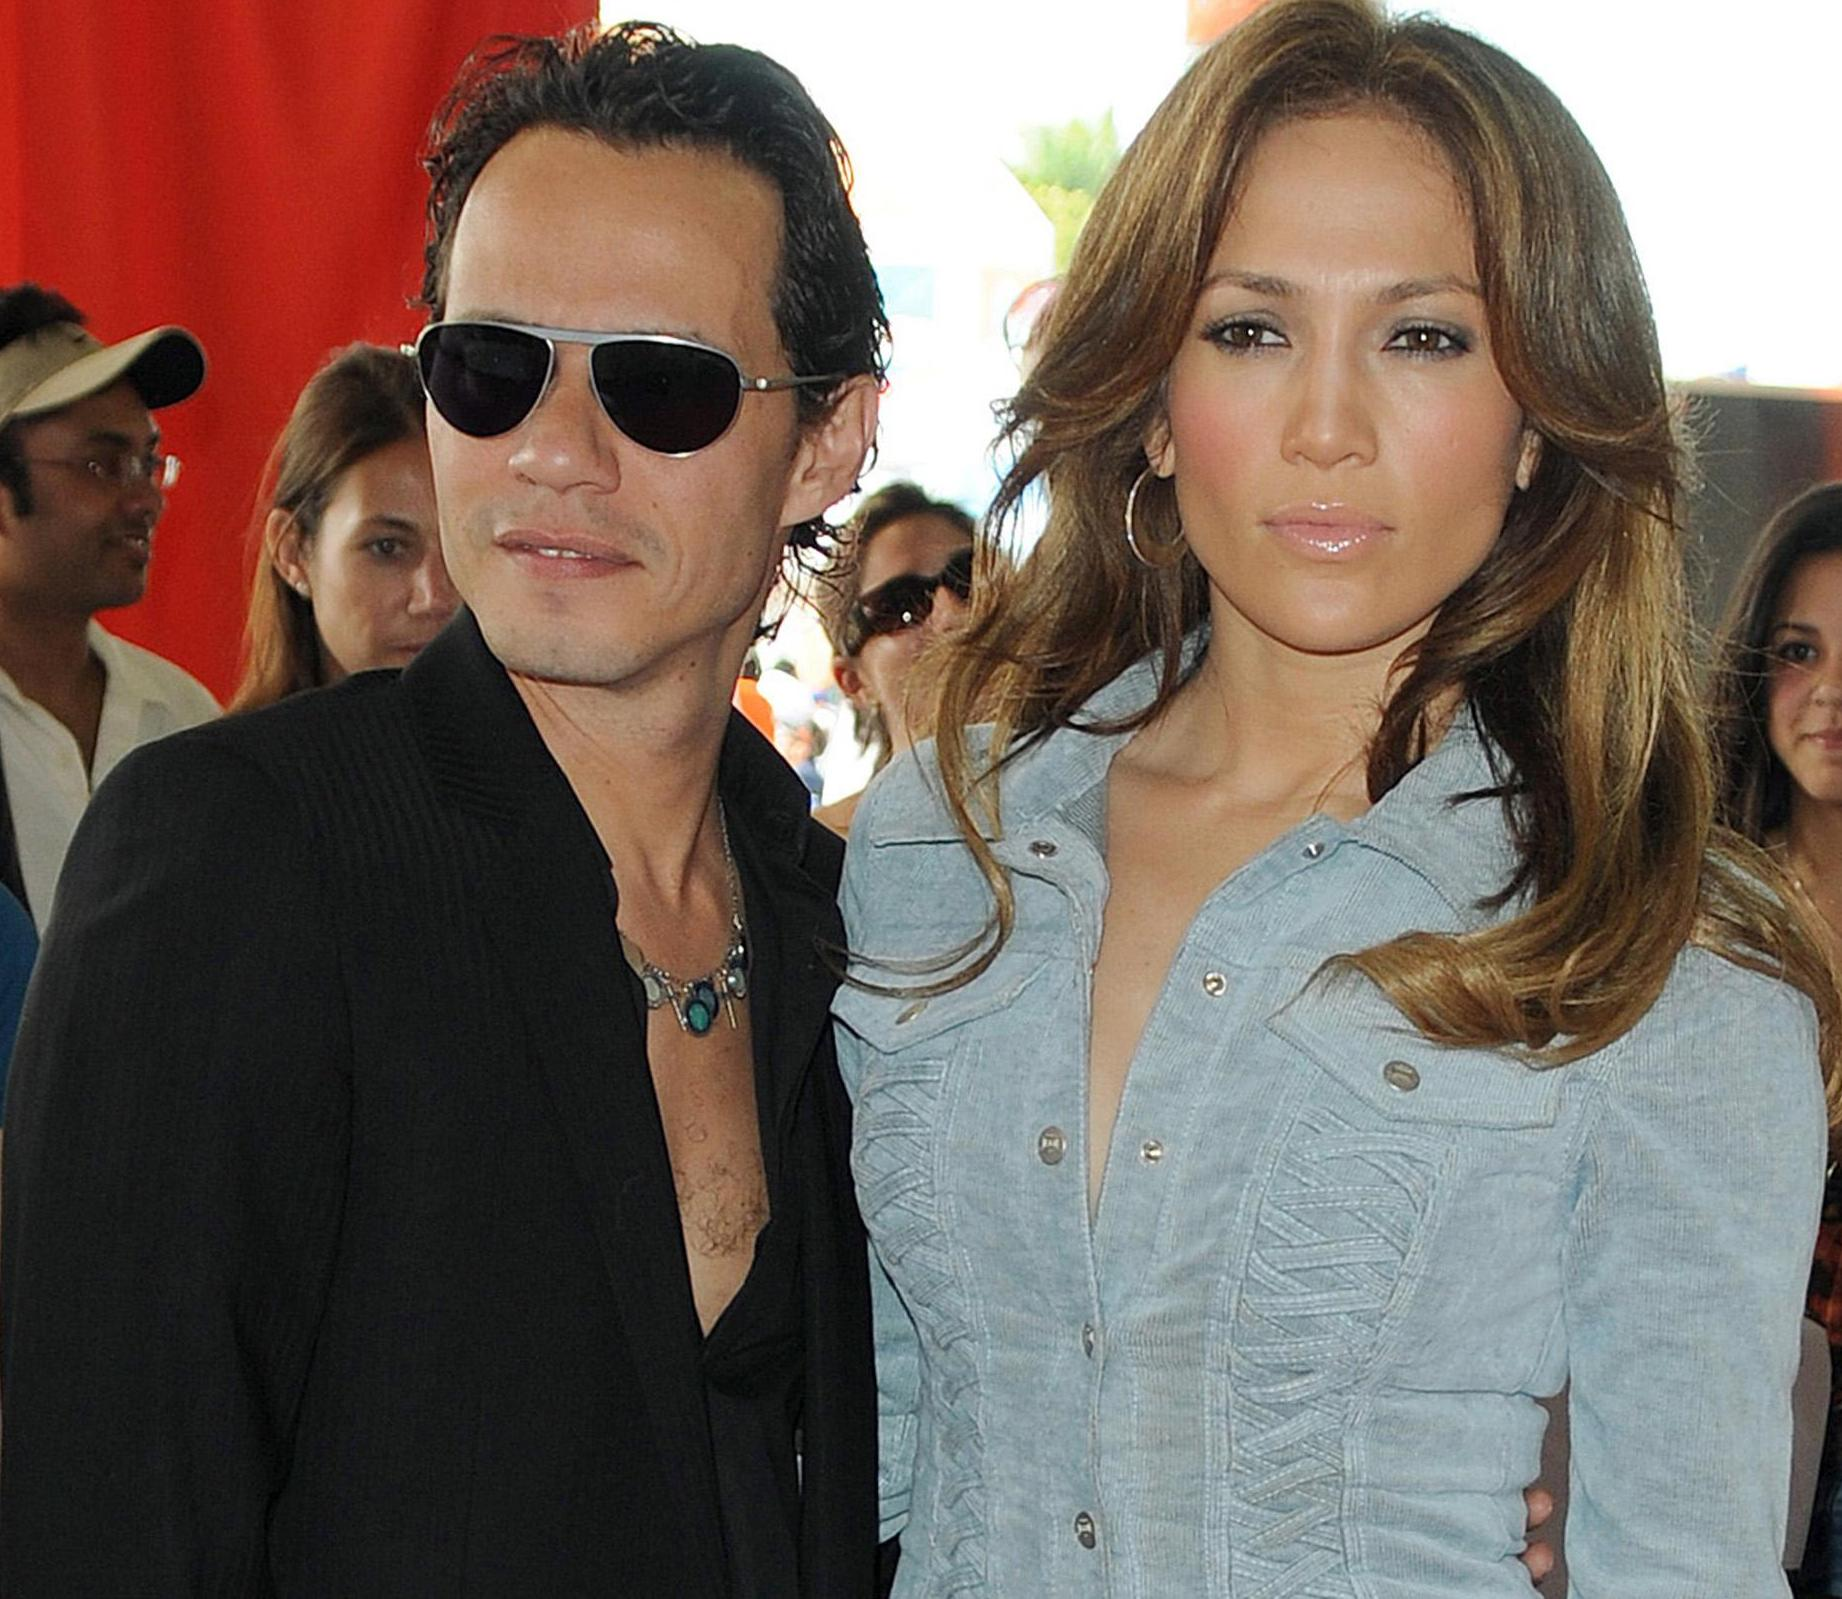 Should Jennifer Lopez and Marc Anthony Get Divorced? - Studies Show